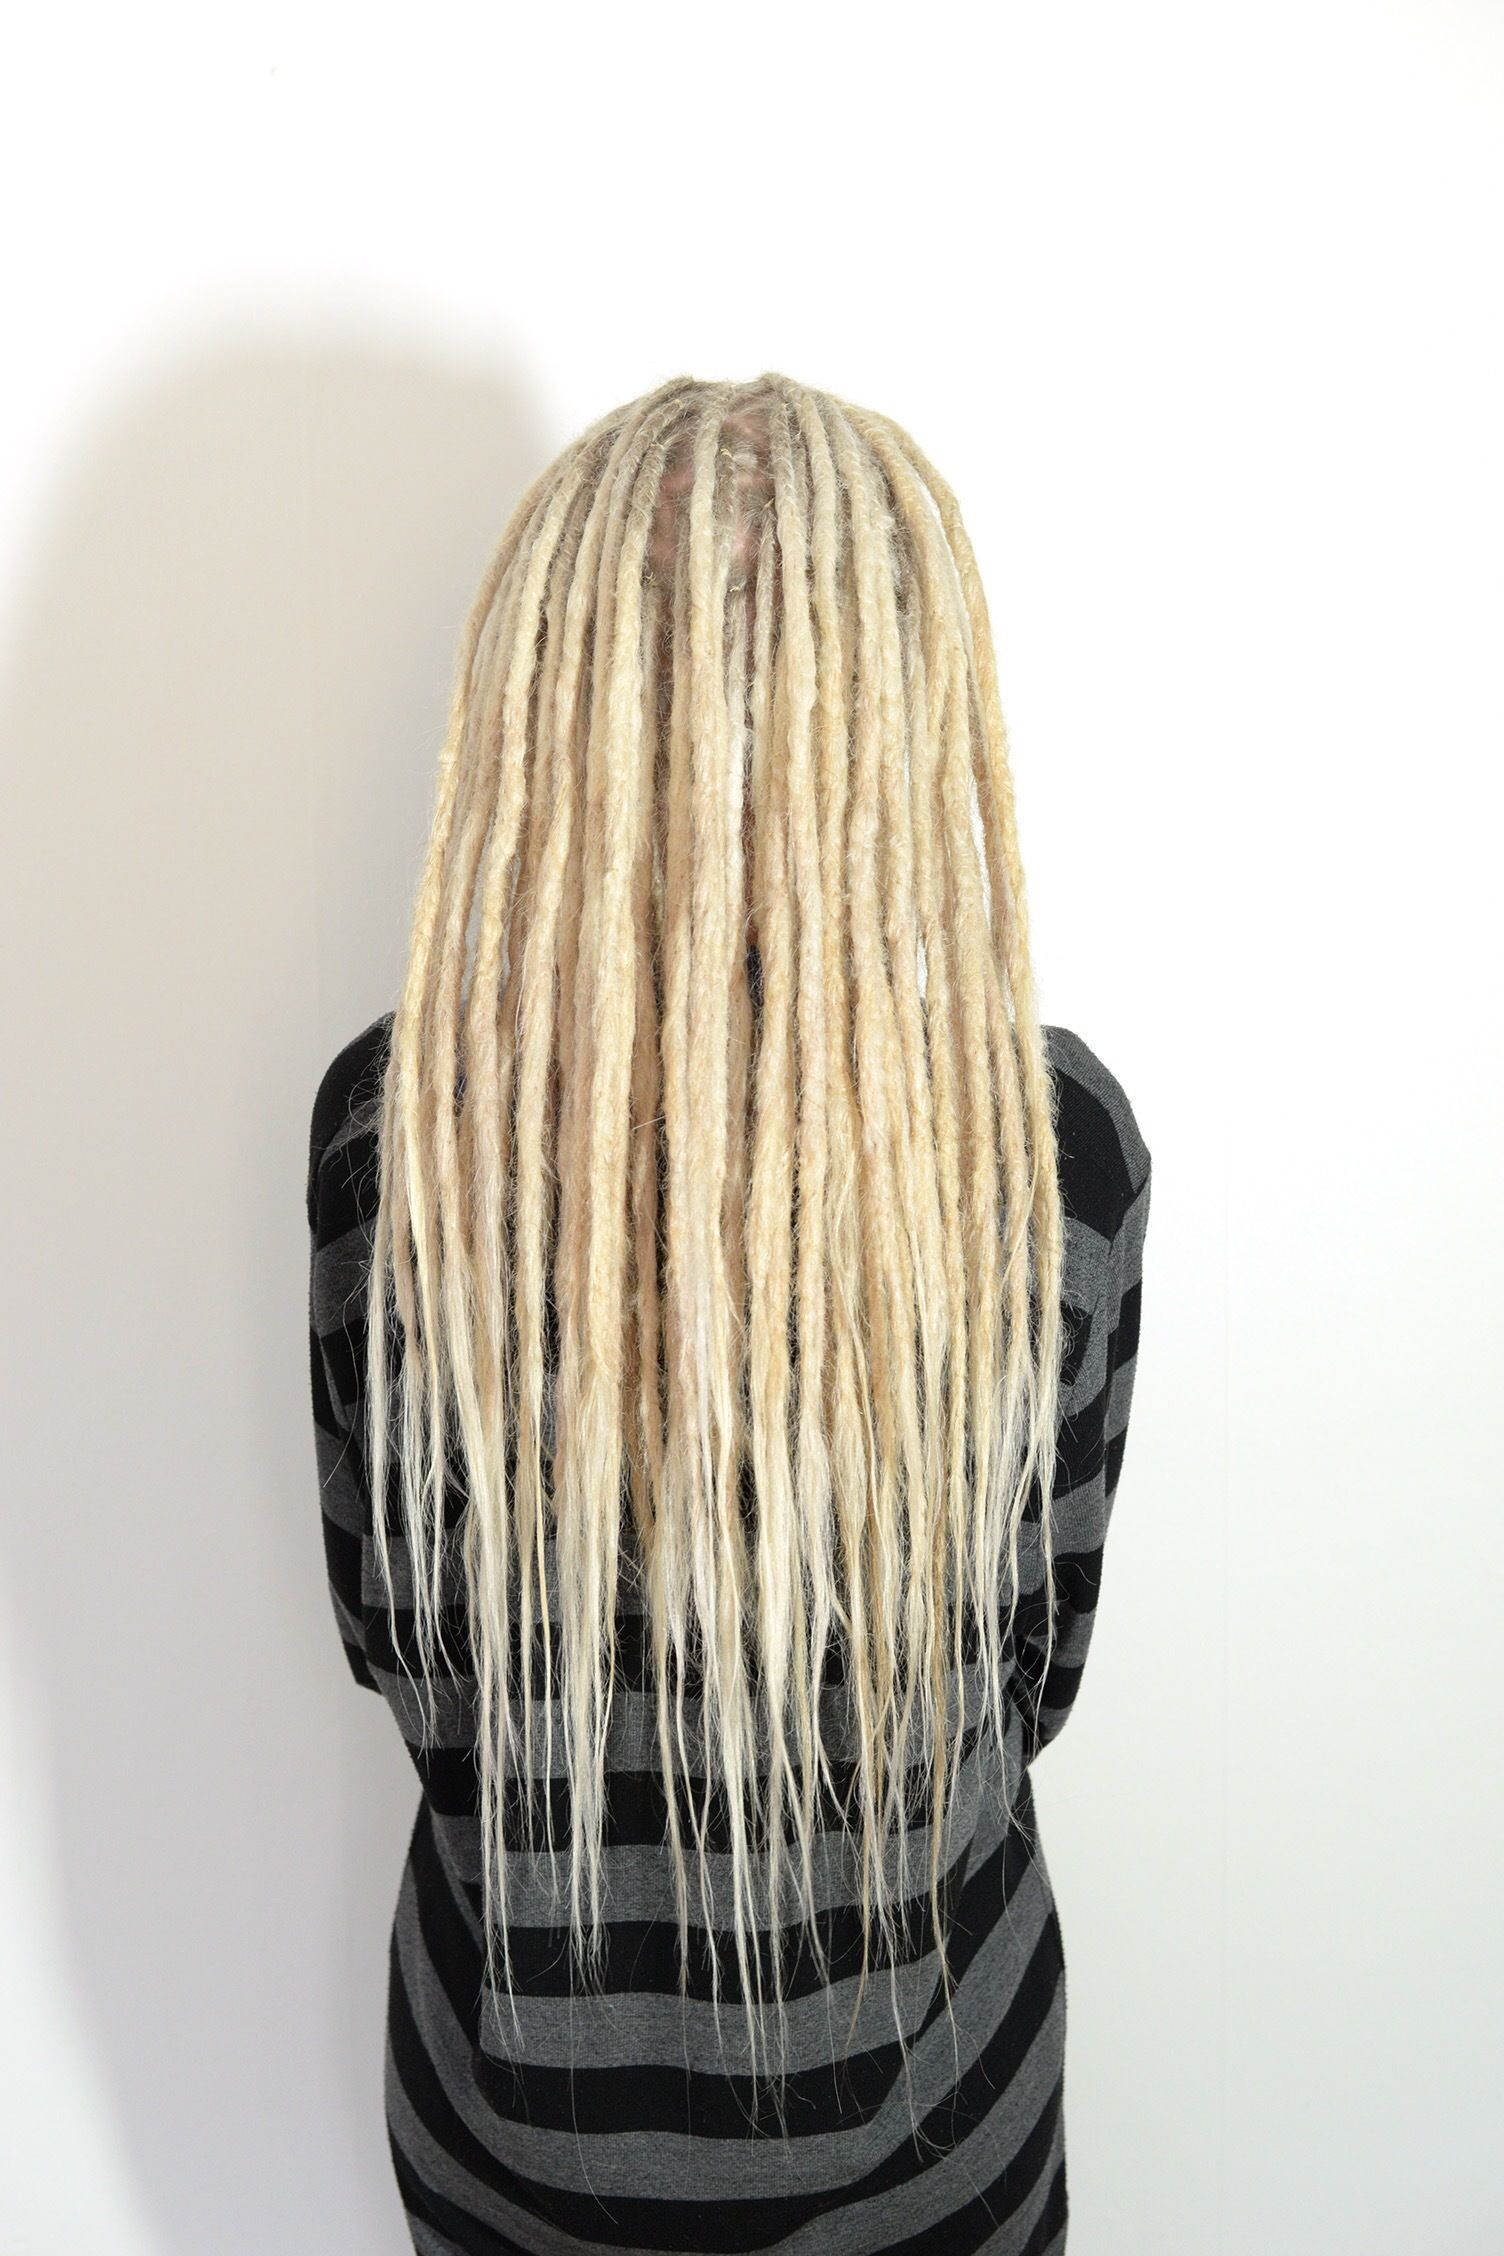 This is fanny, she came to me to get dreadlocks done, she had been thinking about it for a while and now finnaly. Her dreads are made on her own hair and also human hair that I used to add length to her dreads. Love the look of these blond dreadlocks.